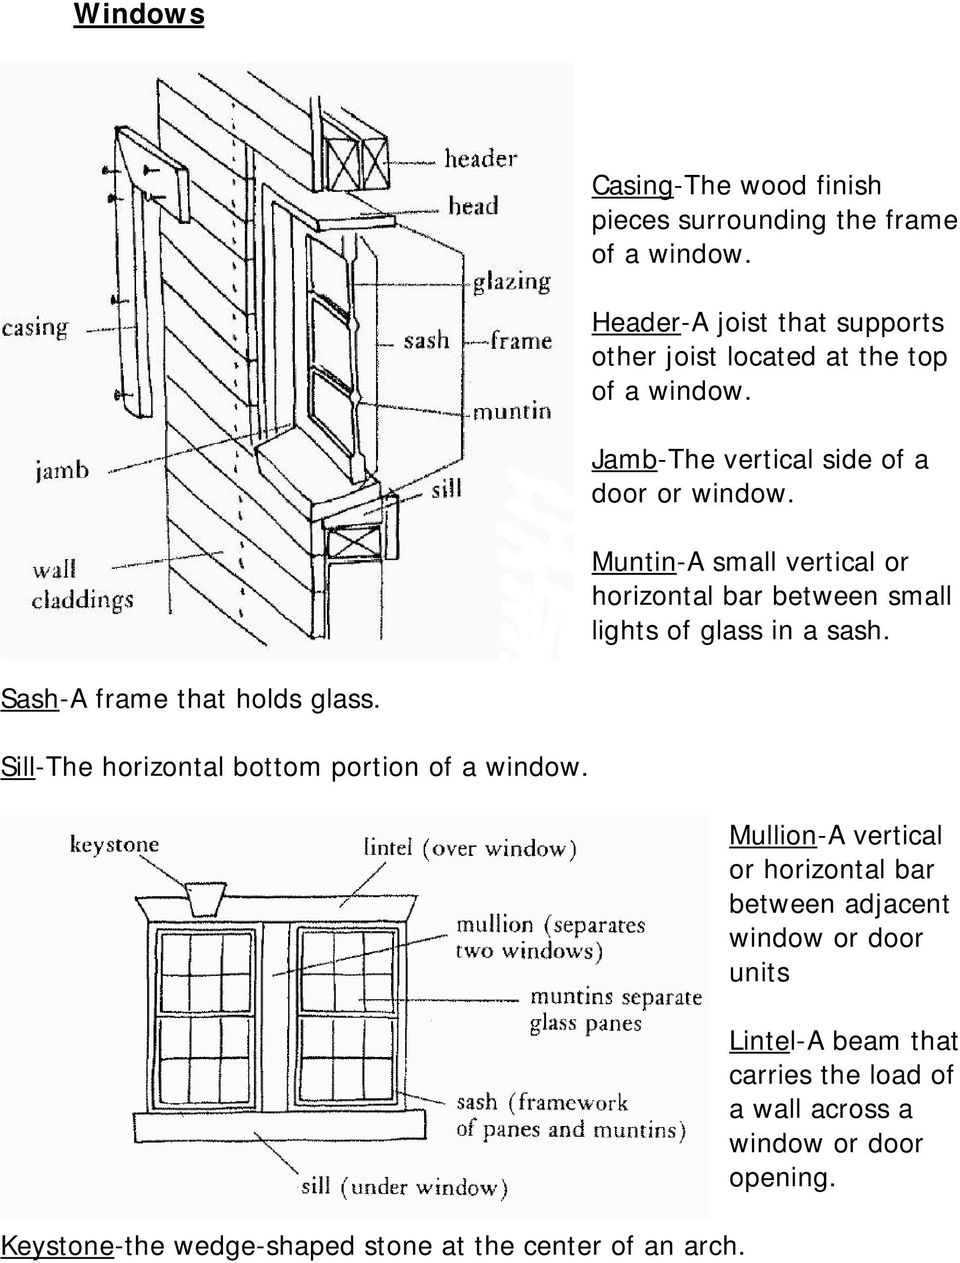 Muntin-A small vertical or horizontal bar between small lights of glass in a sash. Sash-A frame that holds glass.